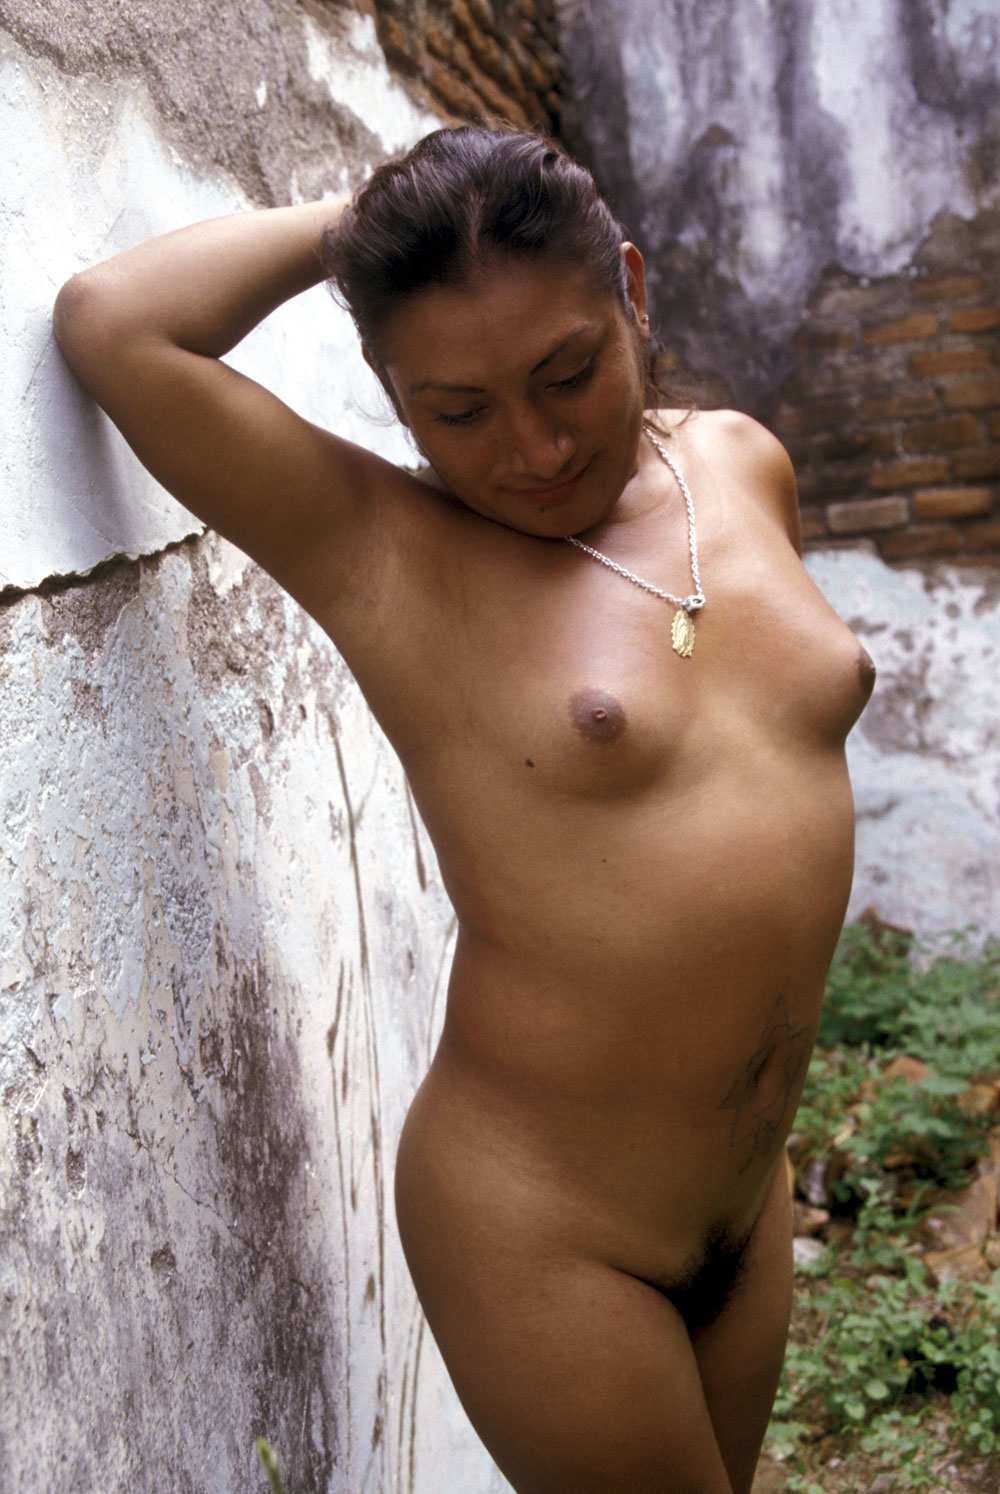 Maria Jose poses naked for a photo, as she shows of her breast that have grown do to hormone injections.